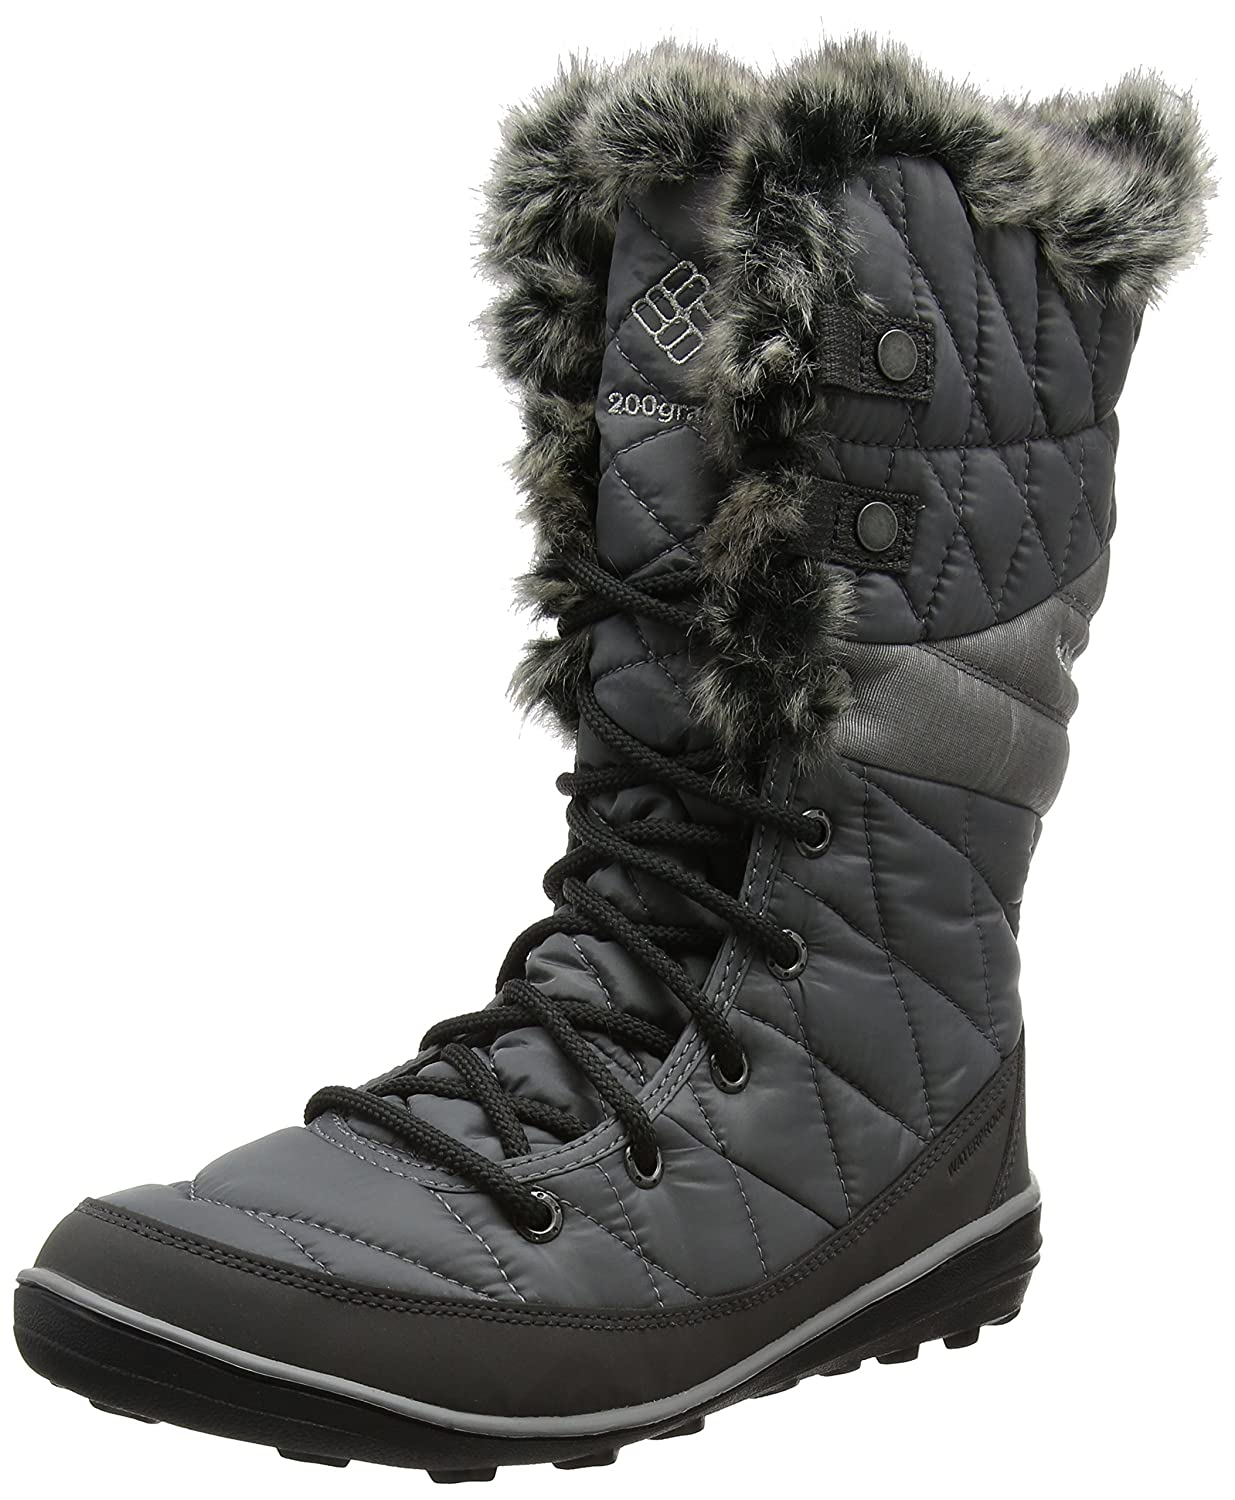 Columbia Women's Heavenly Omni-Heat Mid Calf Boot B0183M07RW 9 B(M) US|Quarry